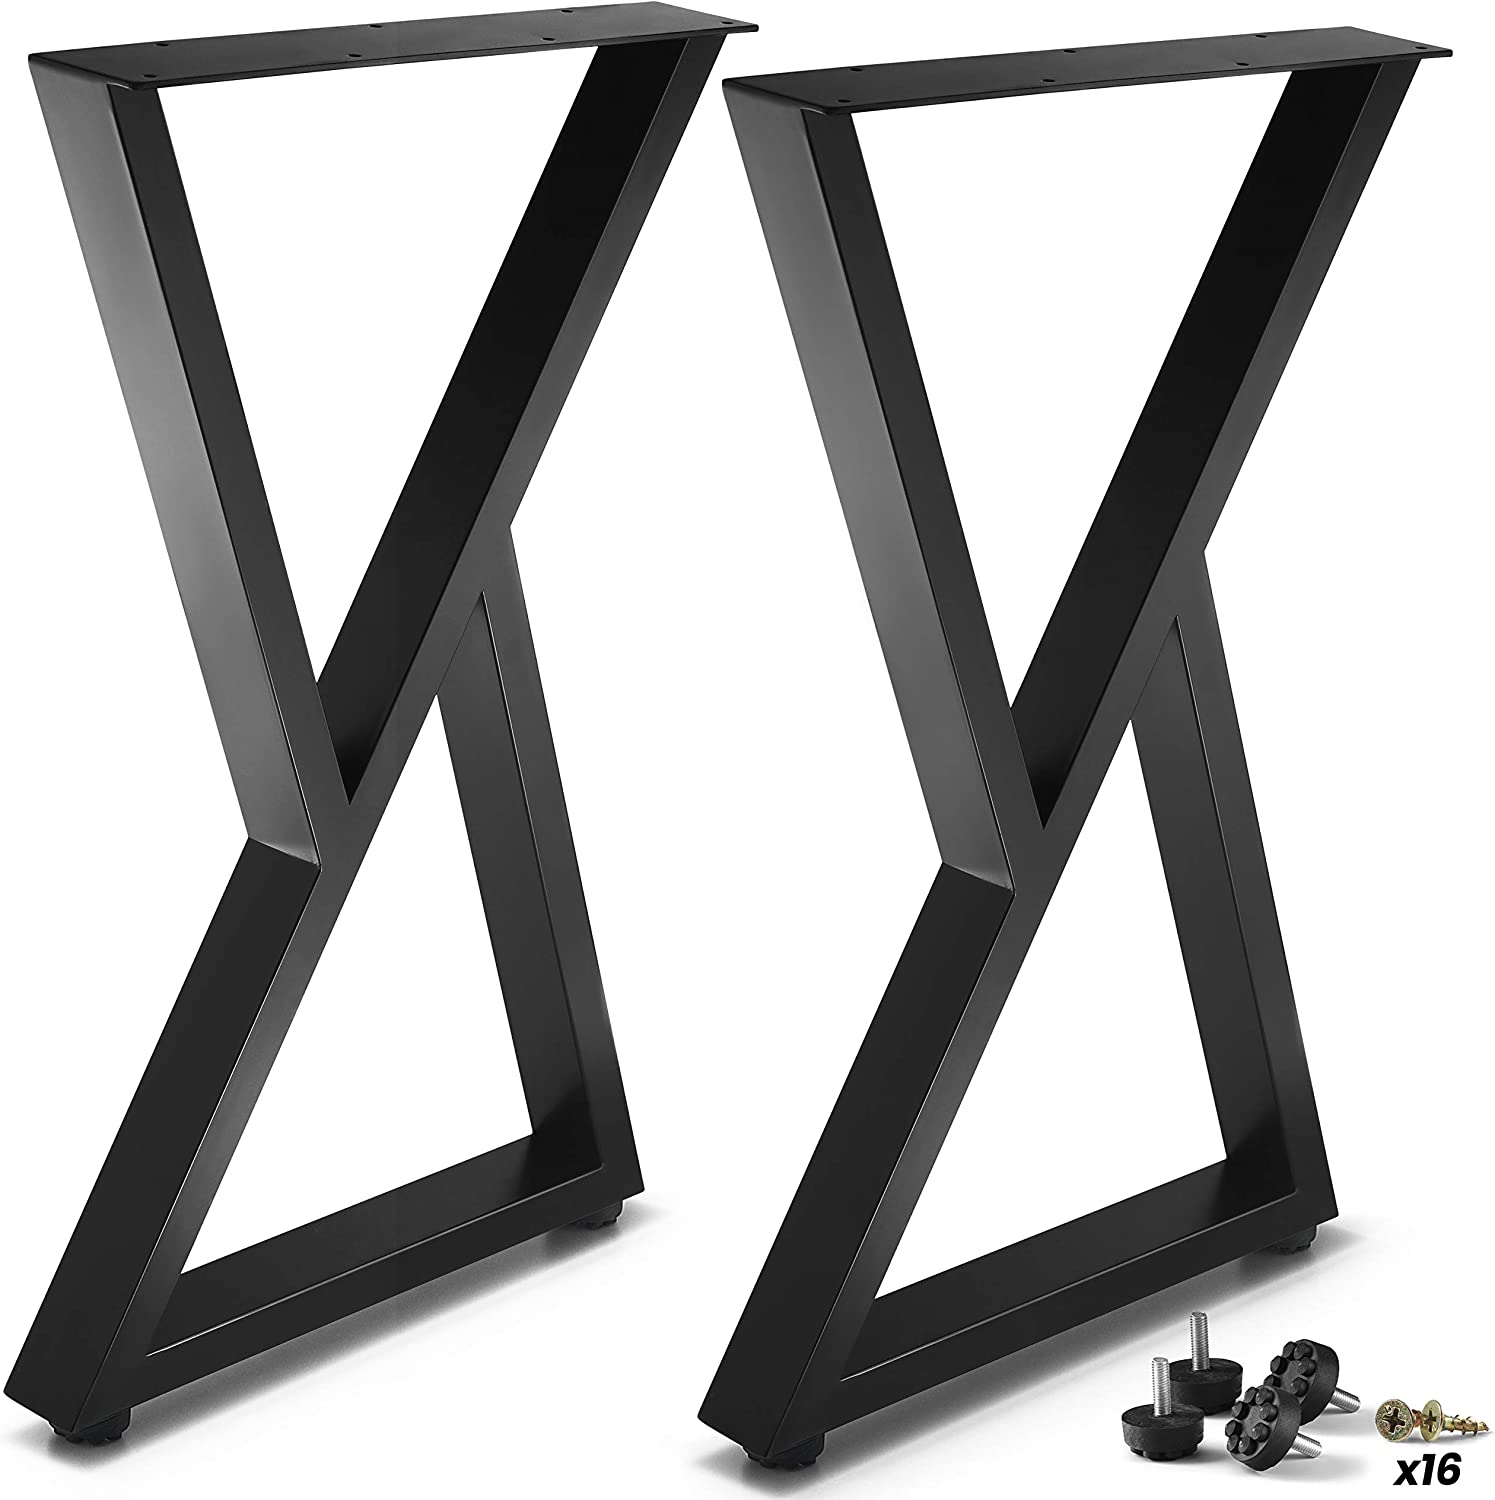 """CRIZTA Metal Table Legs 28 inch Height 17.7"""" Wide Z Shape, Set of 2, Rustic Heavy Duty Leg for Dining Furniture, Wood Coffee Bench Tables and Desk - Black Powder Coated (Black)"""